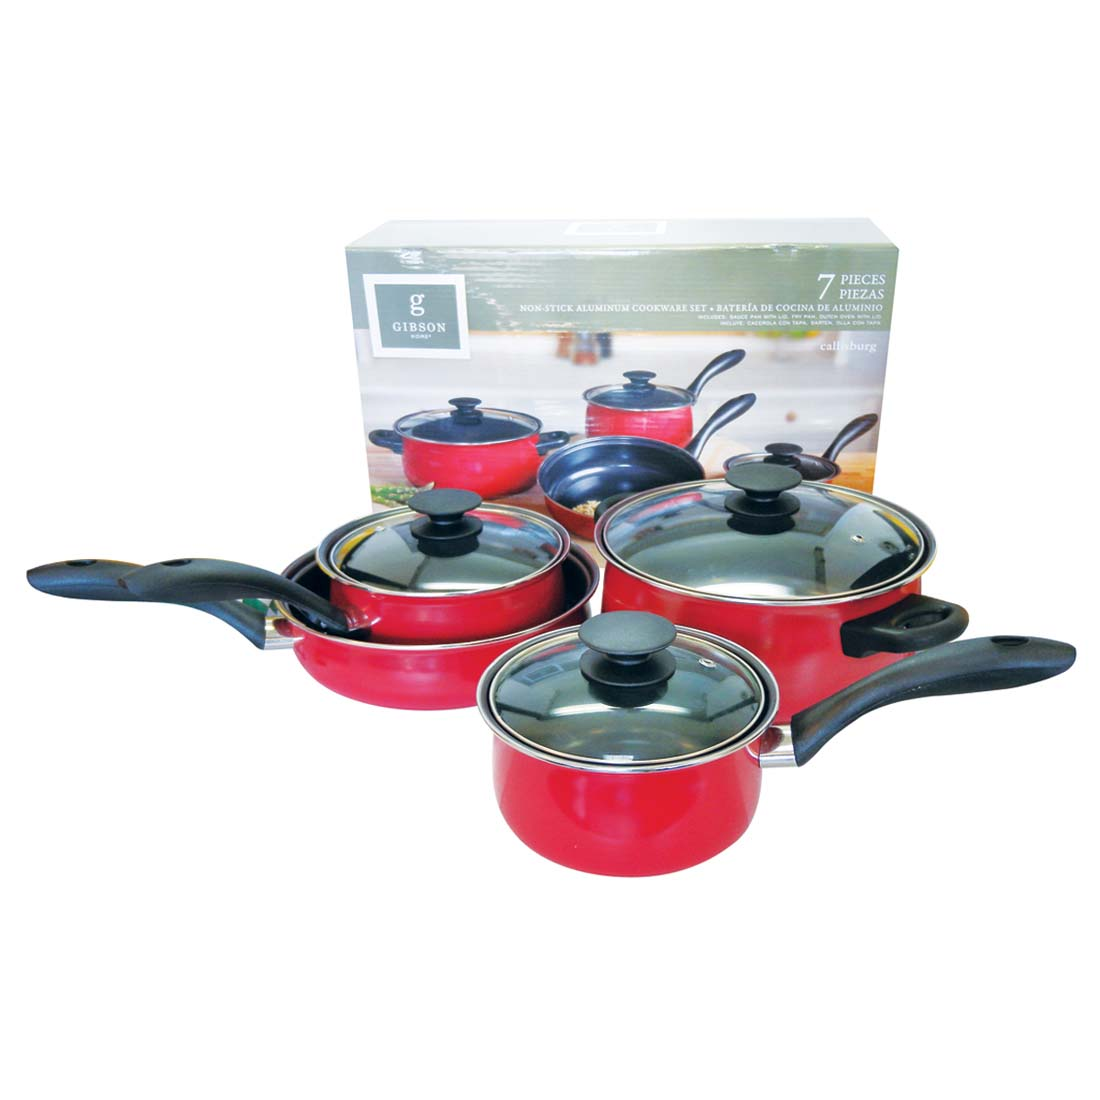 View GIBSON NON-STICK ALUMINUM COOKWARE SET 7 PCS RED-COVERED SAUSEPANS 1.4 QT & 1.9 QT/FRY PAN 9 INCH/COVERED DUTCH OVEN 3.8 QT